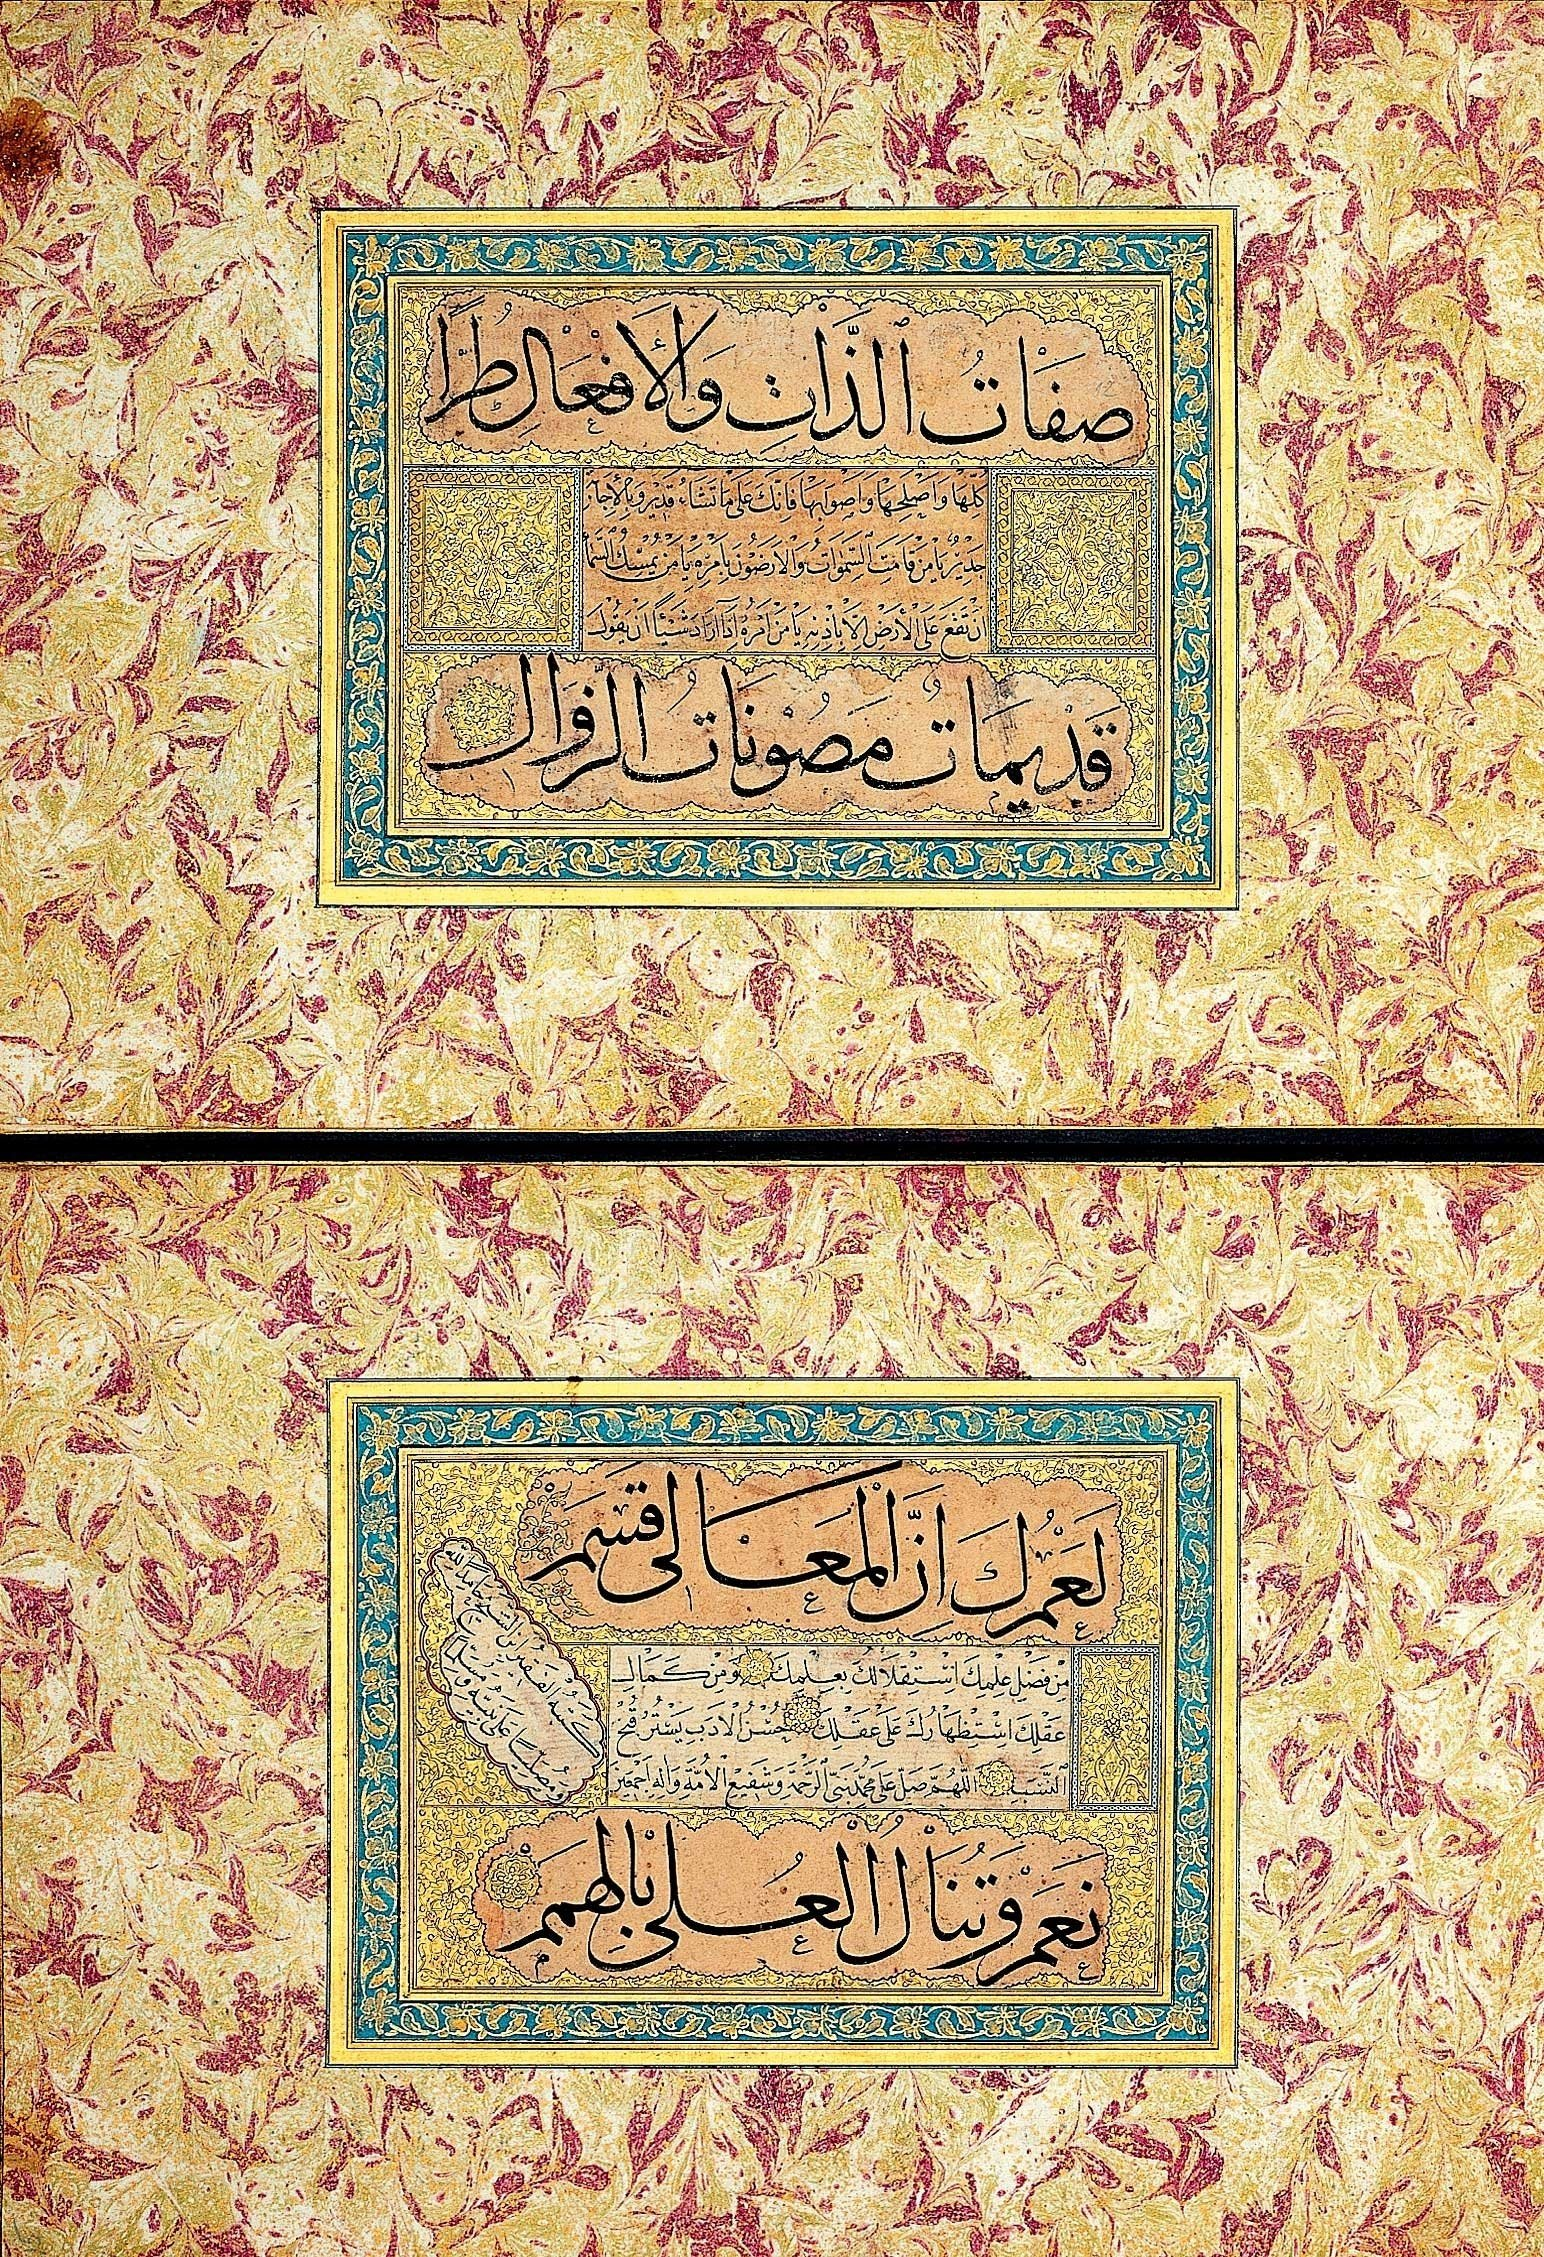 A calligraphic album with thuluth and naskh scripts by Ottoman calligrapher Sheikh Hamdullah. (Courtesy of Sakıp Sabancı Museum)